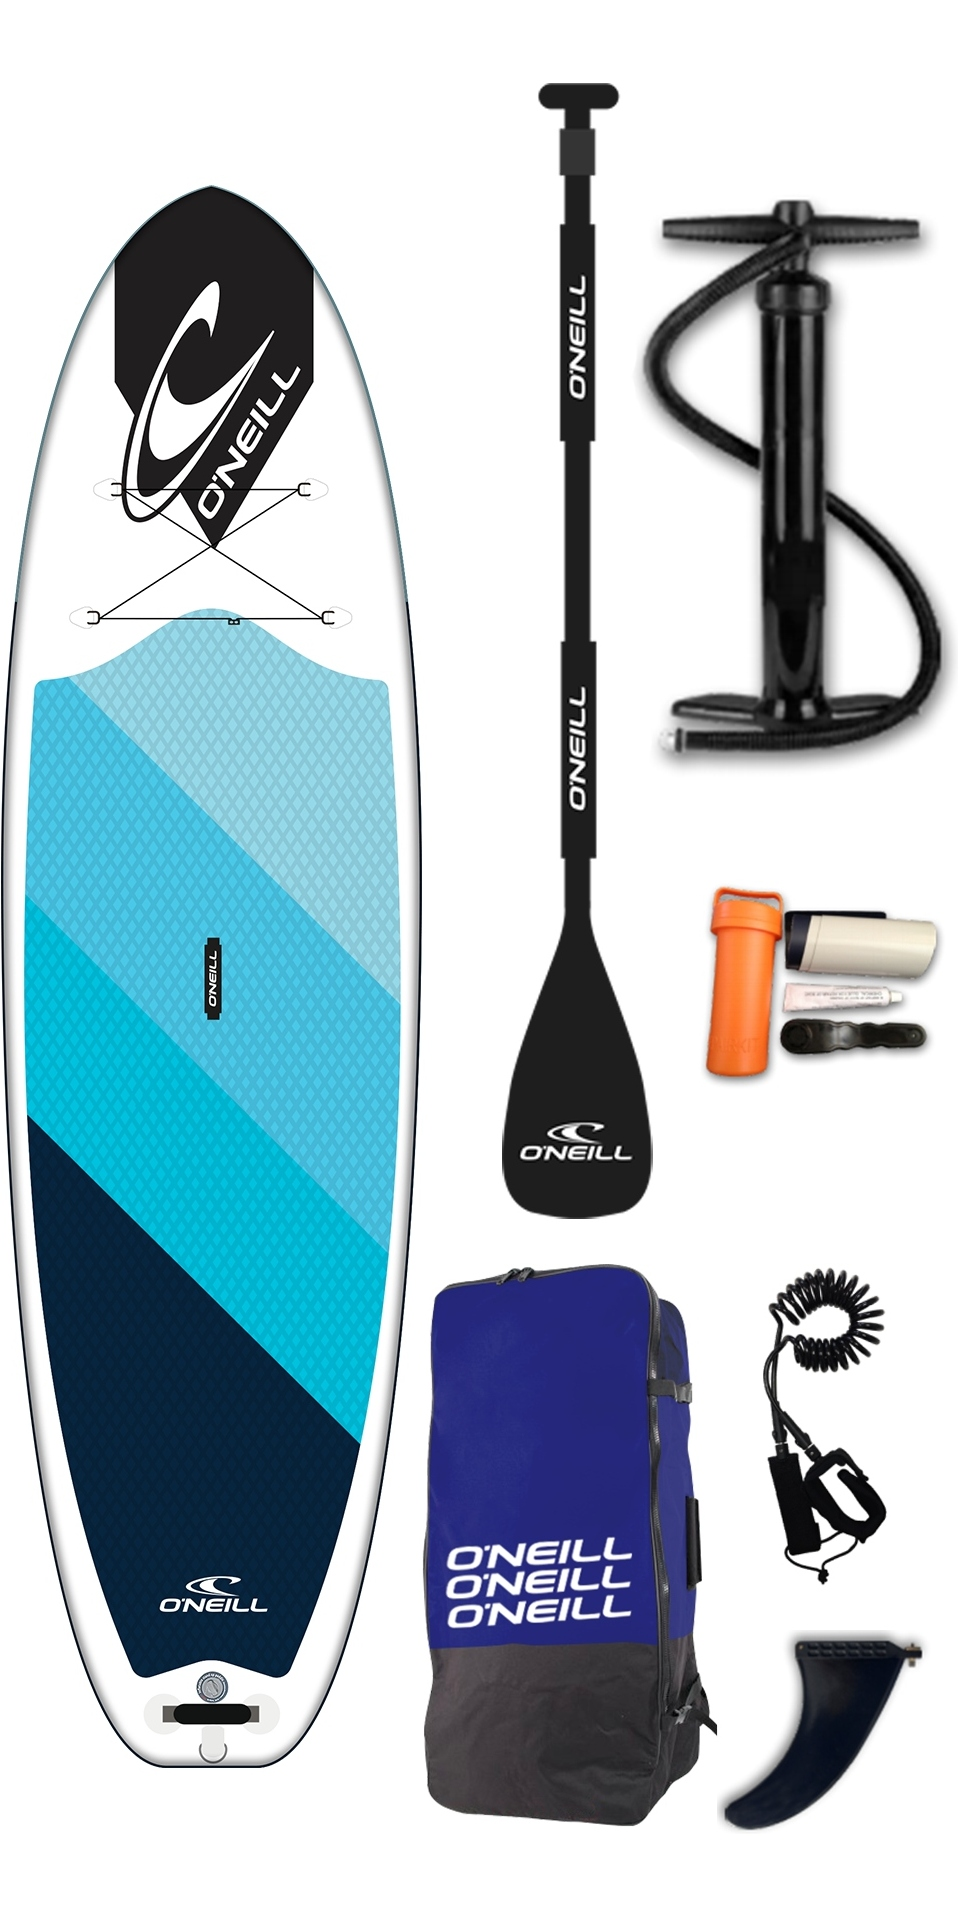 9c2f709fb2fa 2019 O'Neil I-SUP Santa Fade 10'2 Full Pack Board, Paddle & Leash | SUP |  Wetsuitoutlet | Wetsuit Outlet